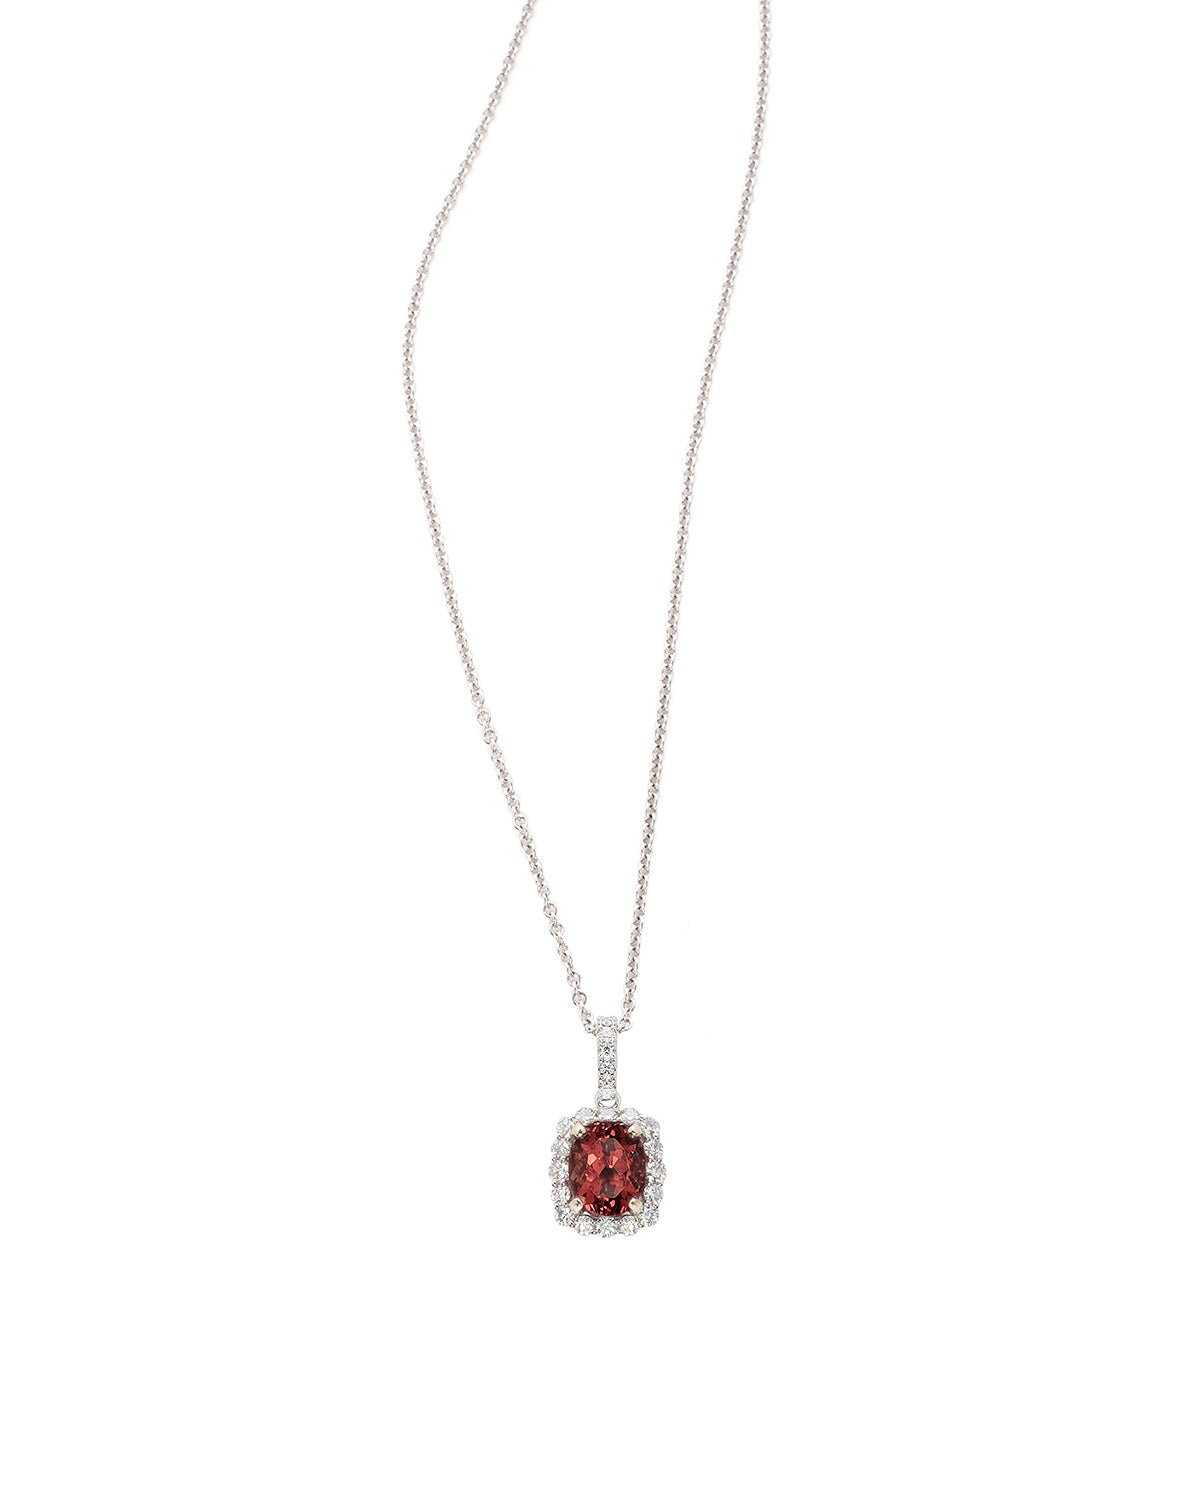 Natural Color Change Garnet and Diamond Pendant in white gold